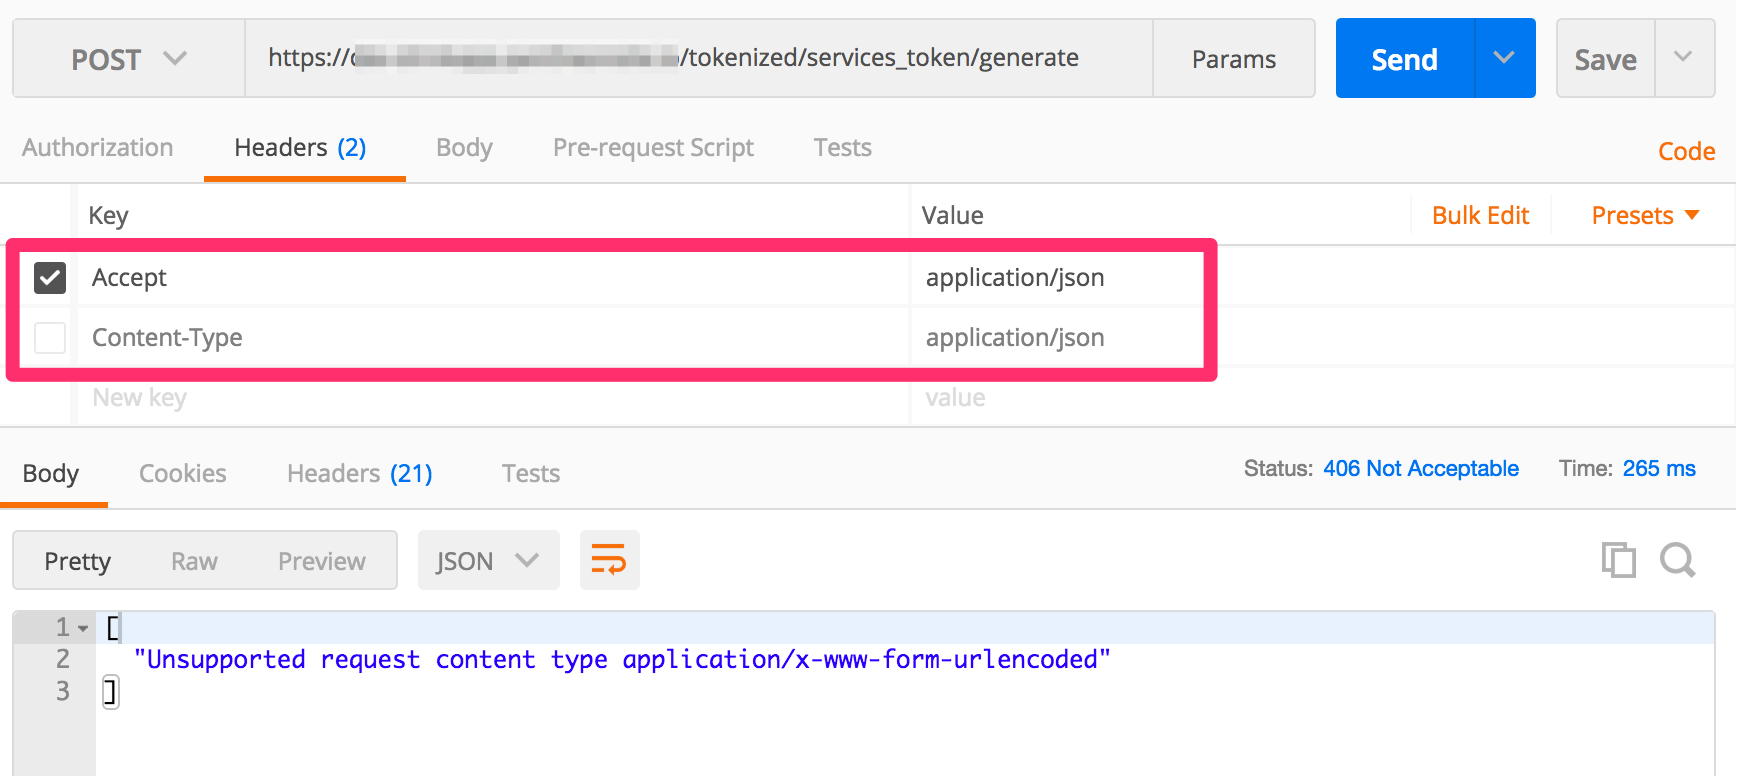 services_token/generate returns null if no authentication